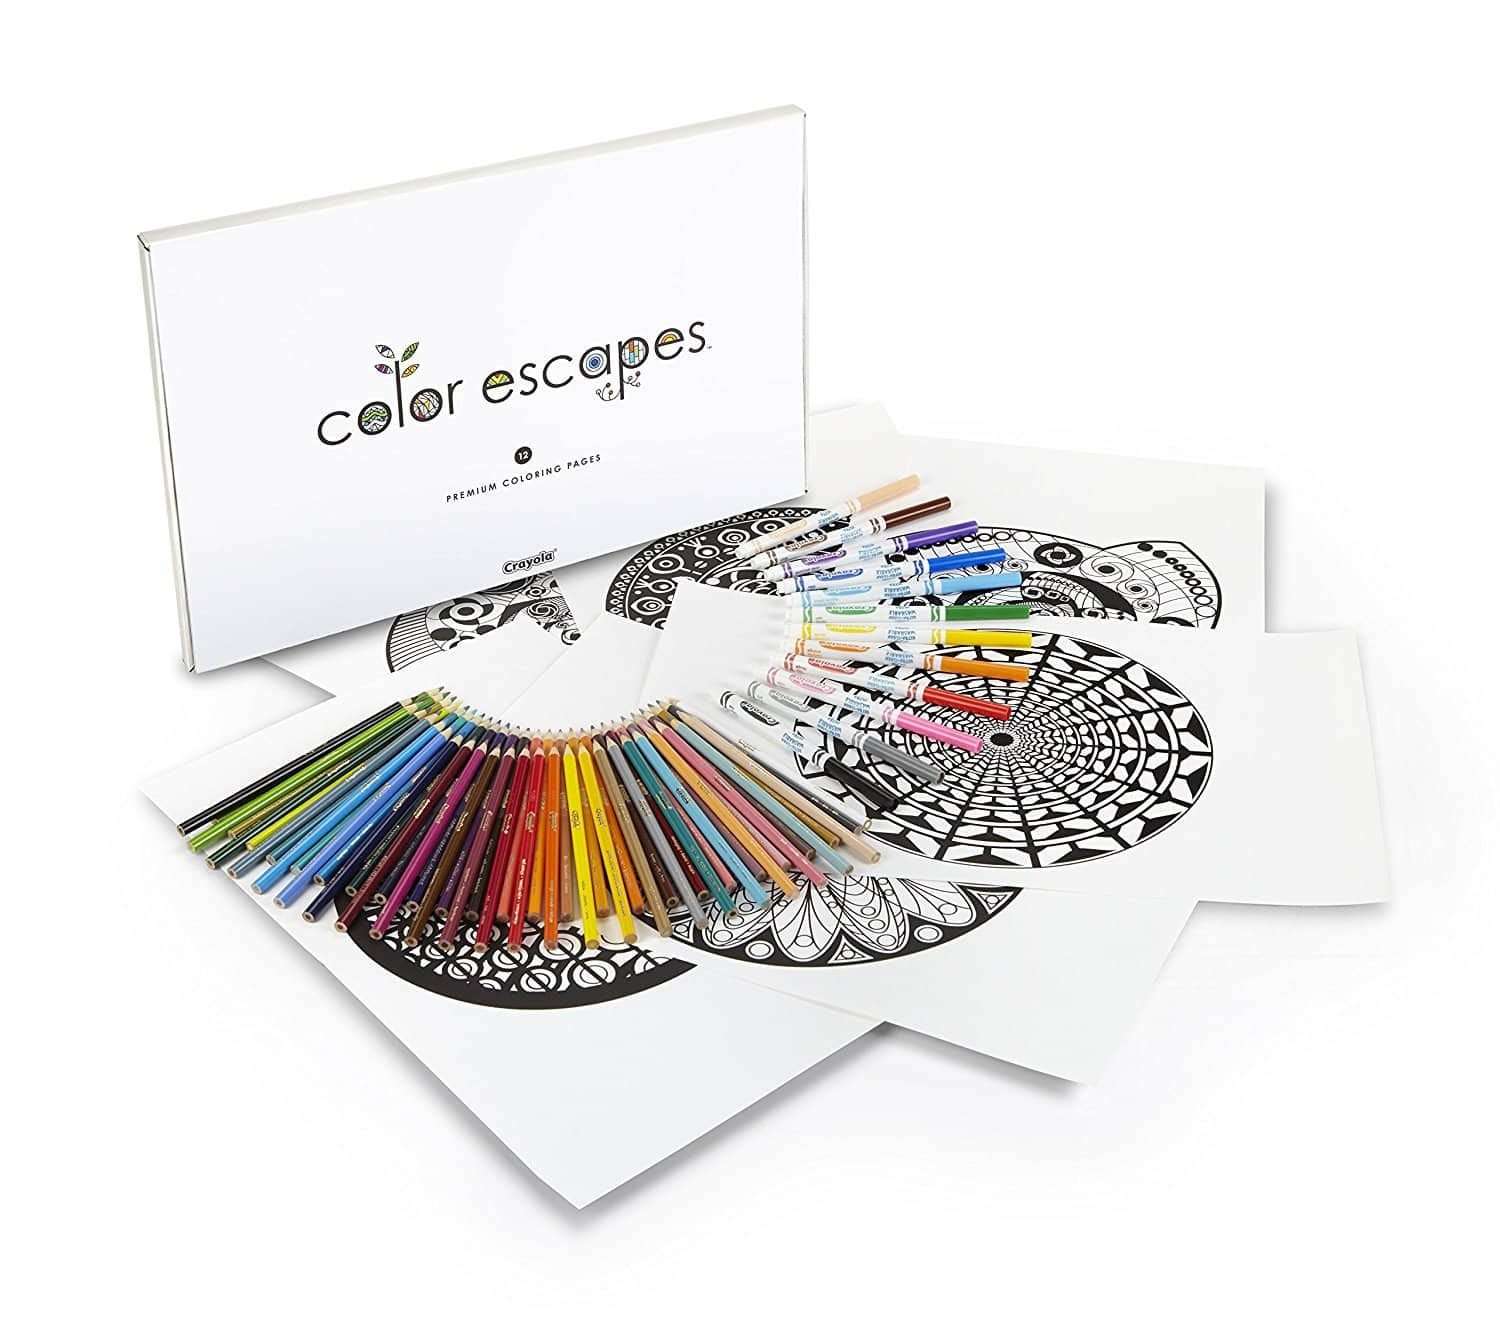 Crayola Color Escapes Coloring Pages & Pencil Kit Kaleidoscopes Edition (50 Colored Pencils + 12 Markers + 12 Coloring Pages) for $5.50 at Amazon *Add-On Item*